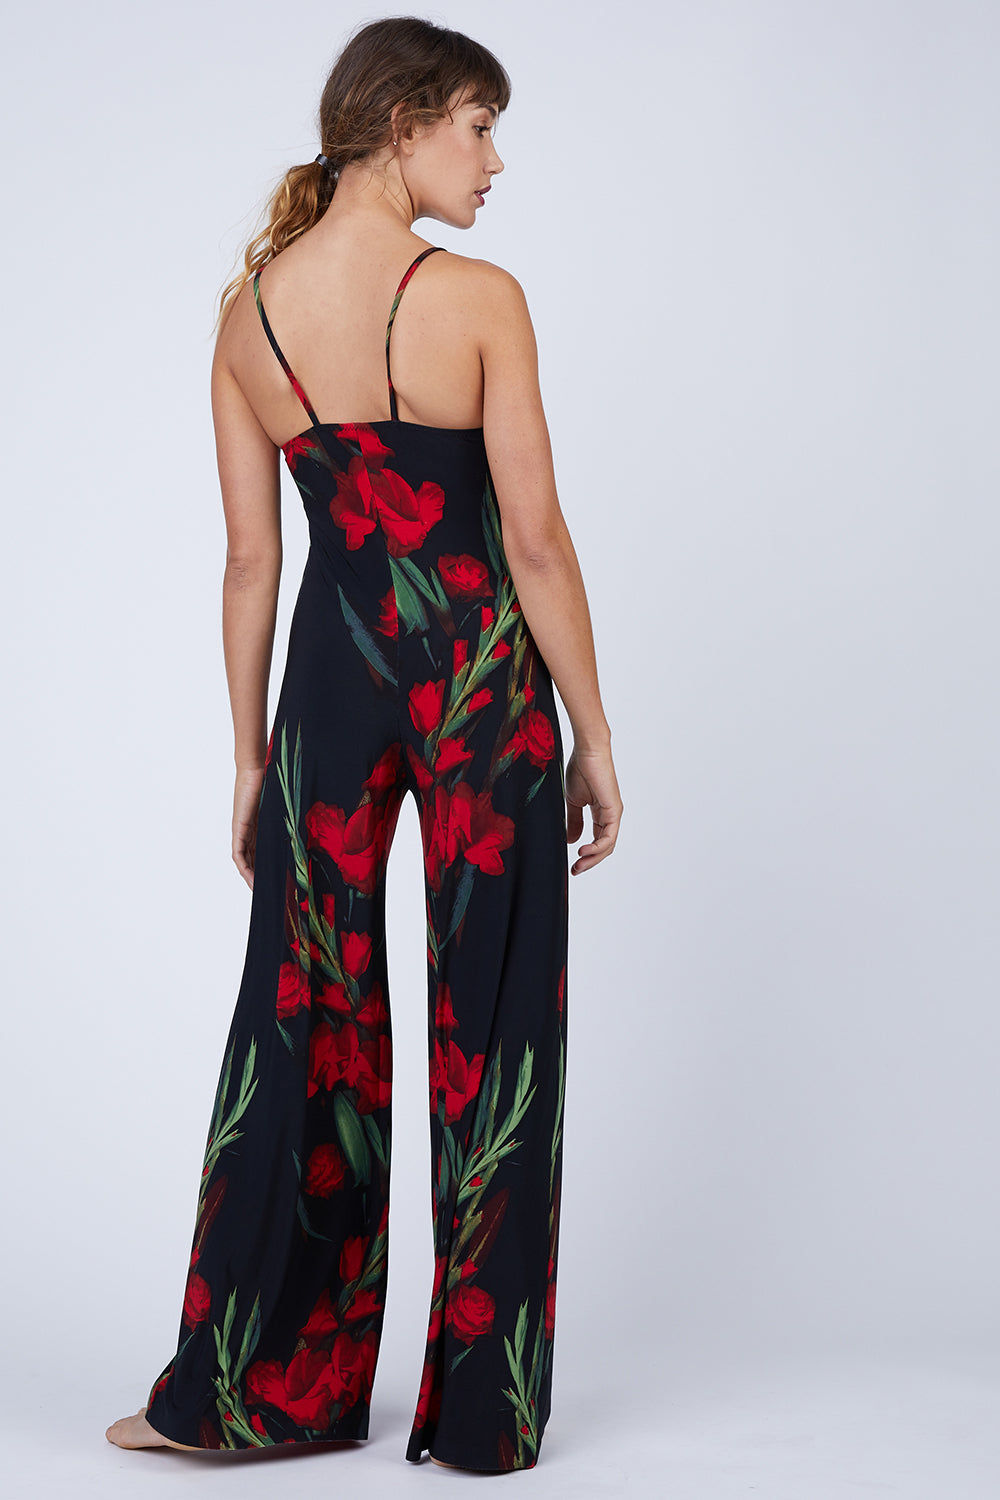 NORMA KAMALI Slip Jumpsuit - Blooming Roses Print Jumpsuit | Blooming Roses Print| Norma Kamali Slip Jumpsuit - Blooming Roses Print  Flowy stretch jersey jumpsuit in red and black floral print. Thin slip straps and simple tank neckline frame the minimalistic cut. Long, wide-leg trouser-style pant lengthens your frame in an easy breezy look. Back View